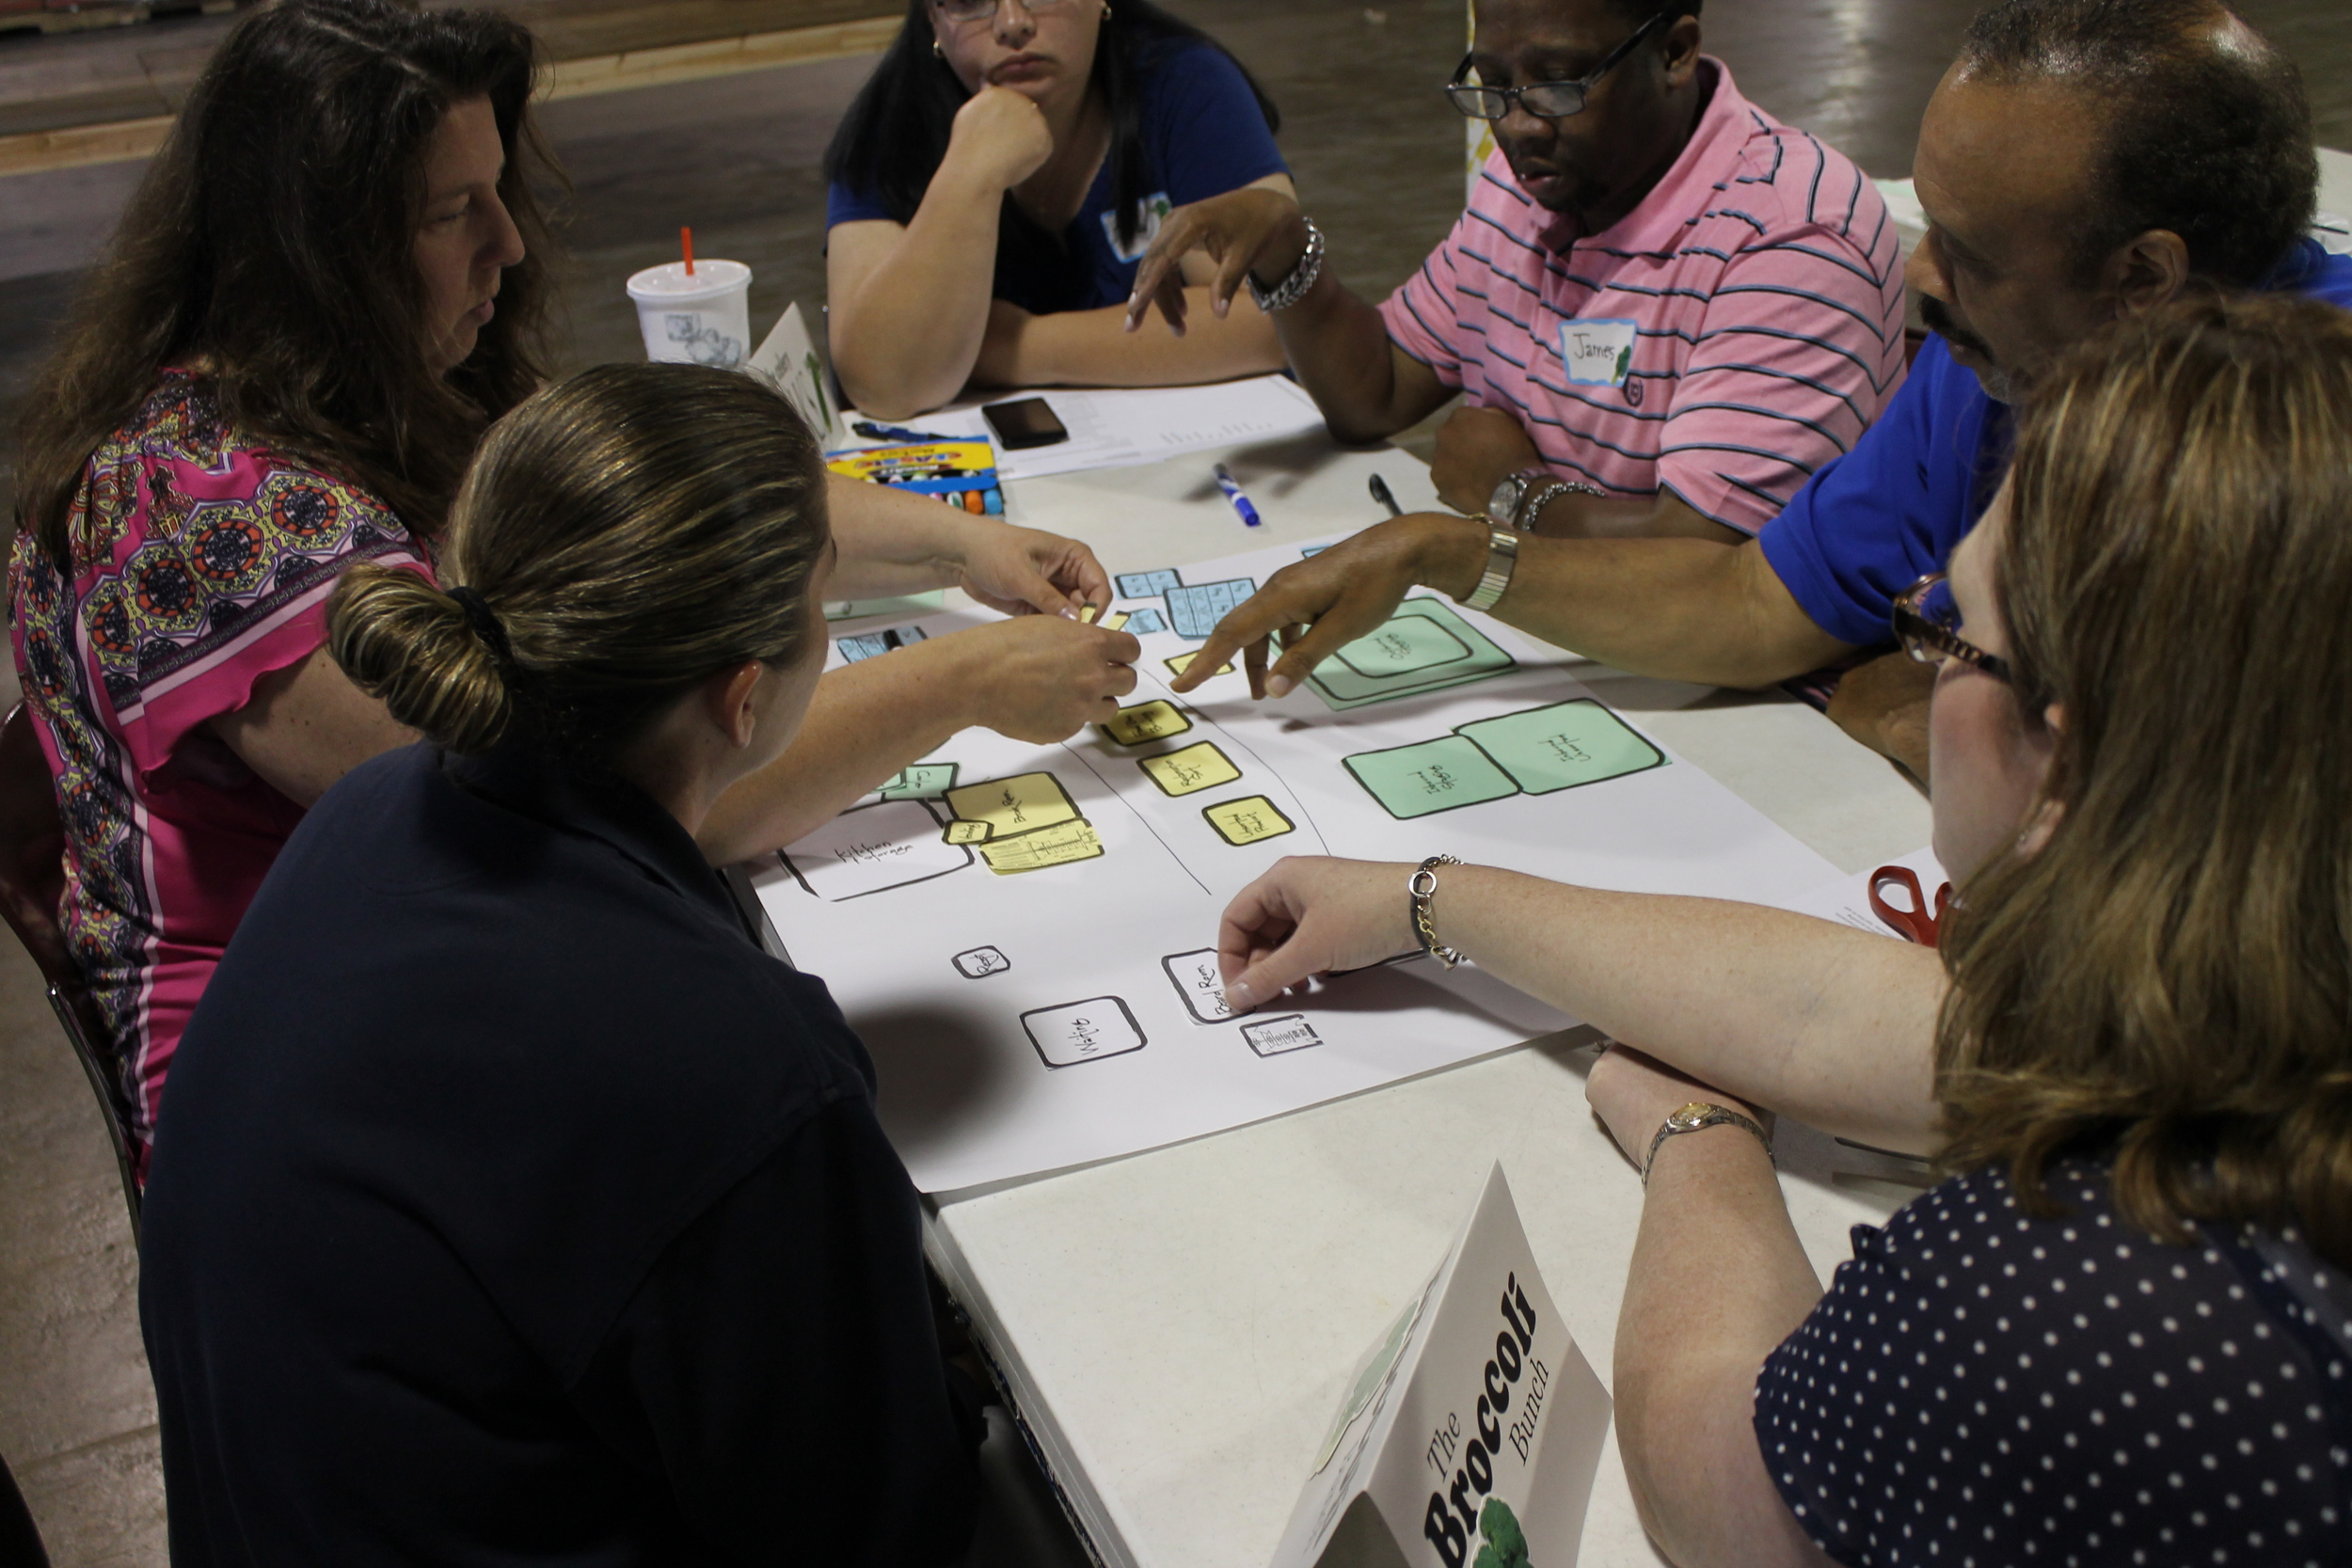 A take-part workshop involving the Food Bank staff.